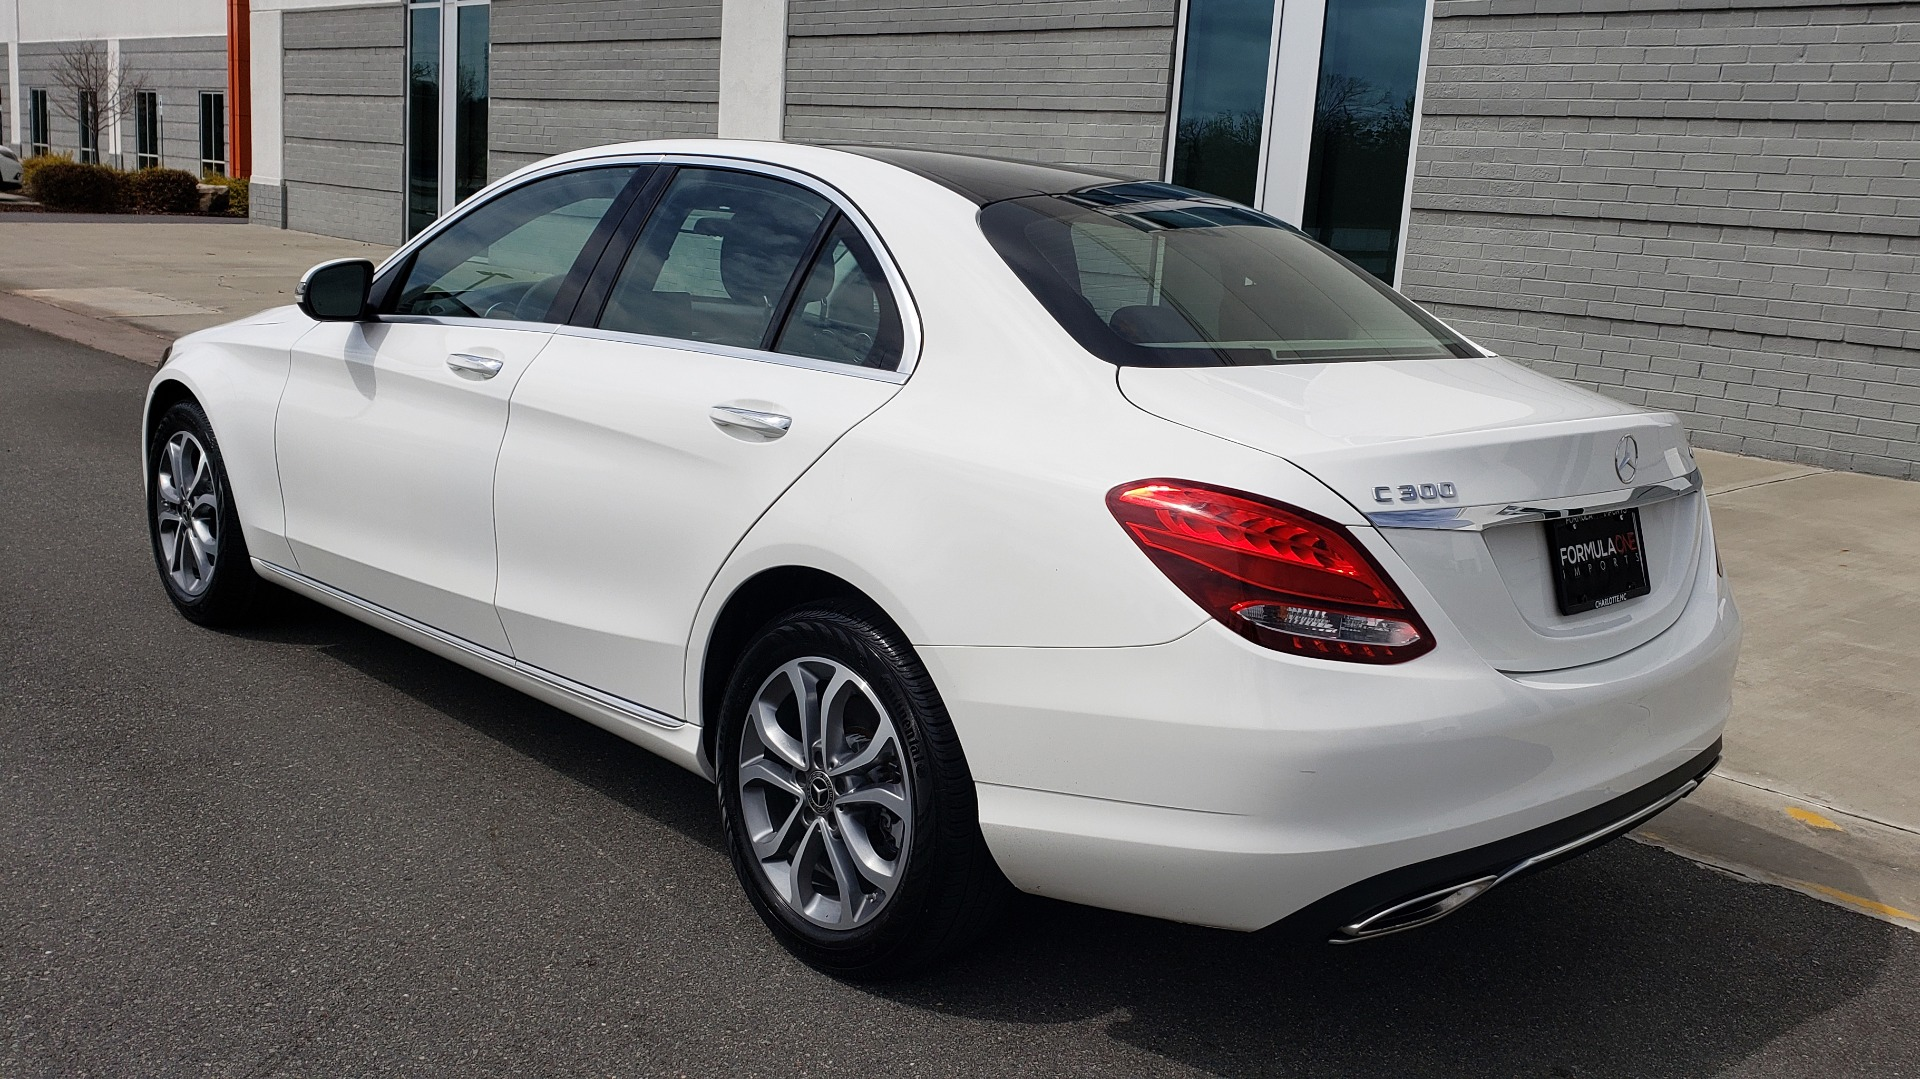 Used 2018 Mercedes-Benz C-CLASS C 300 4MATIC PREMIUM / HTD STS / PANO-ROOF / REARVIEW for sale Sold at Formula Imports in Charlotte NC 28227 4